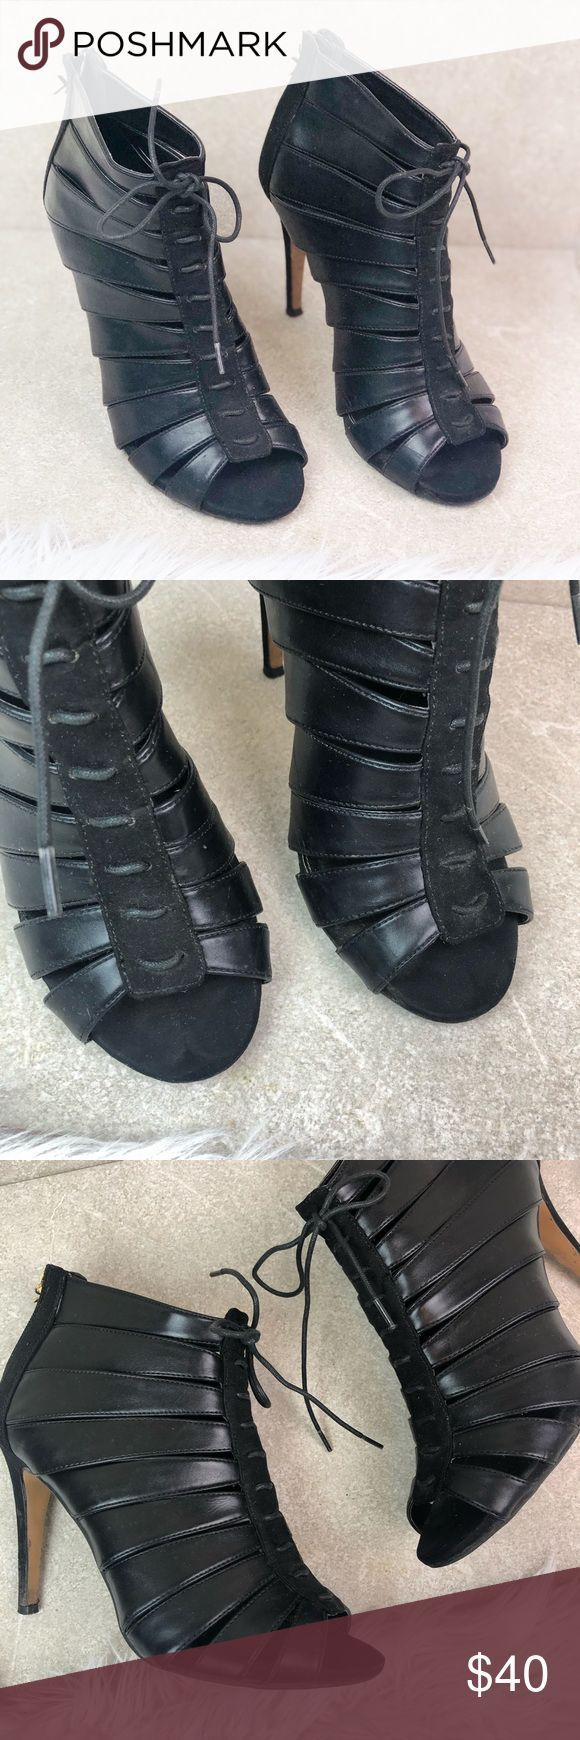 Kardashian Kollection Peep Toe Ankle Booties ⦁ Features: Black Leather and sue